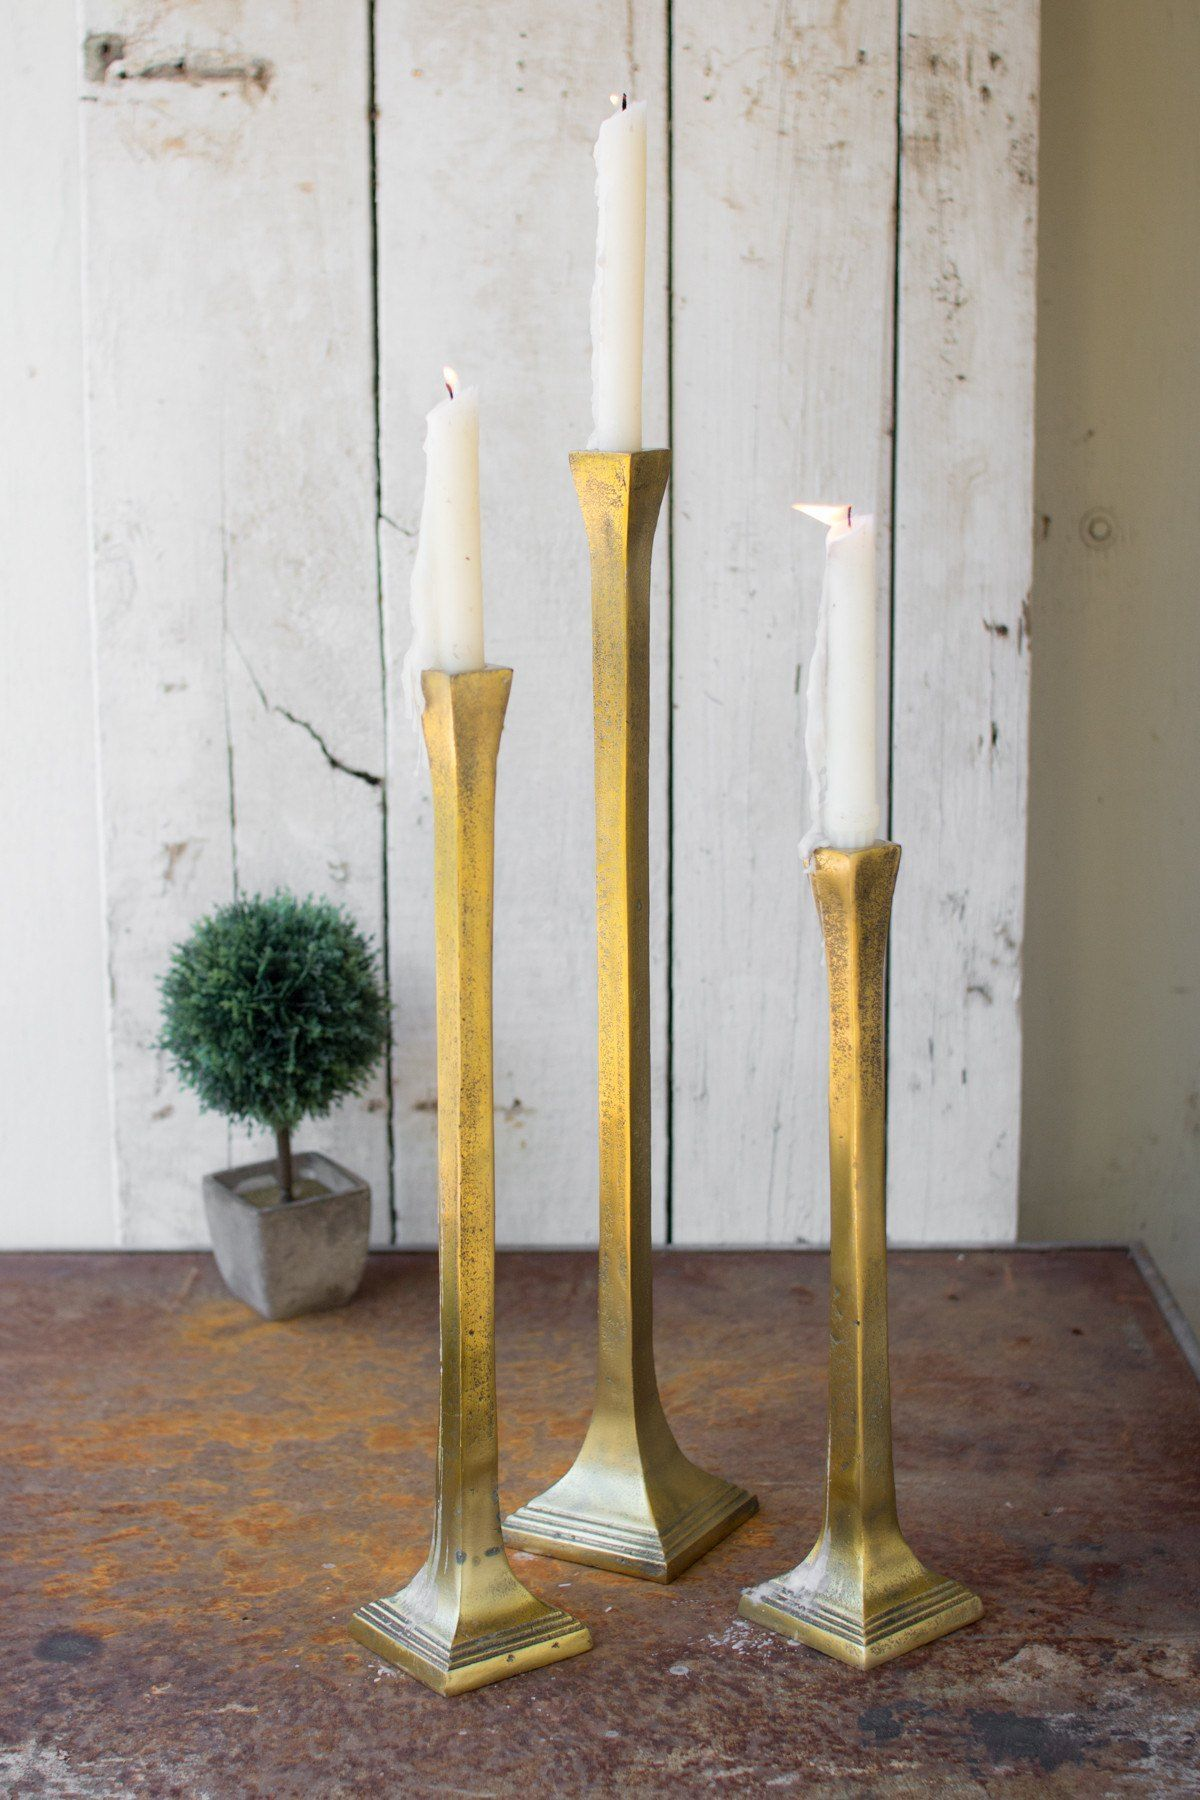 Set Of Three Tall Taper Candle Holders Antique Gold Tall Candle Holders Candle Holders